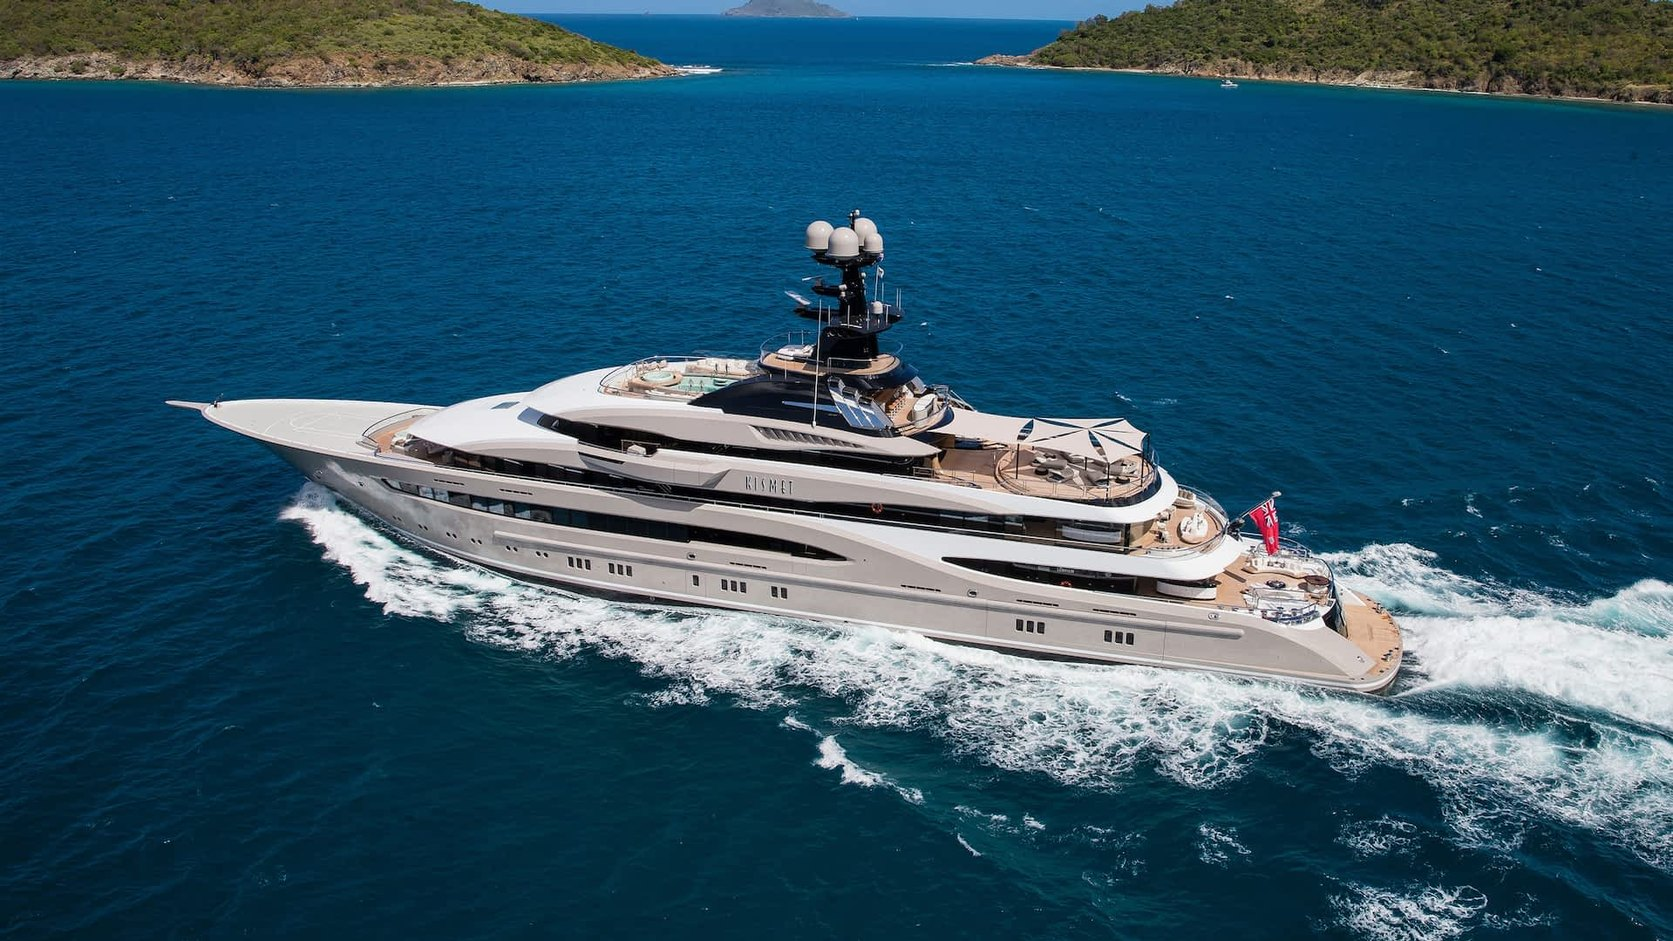 superyacht KISMET underway during a private yacht charter